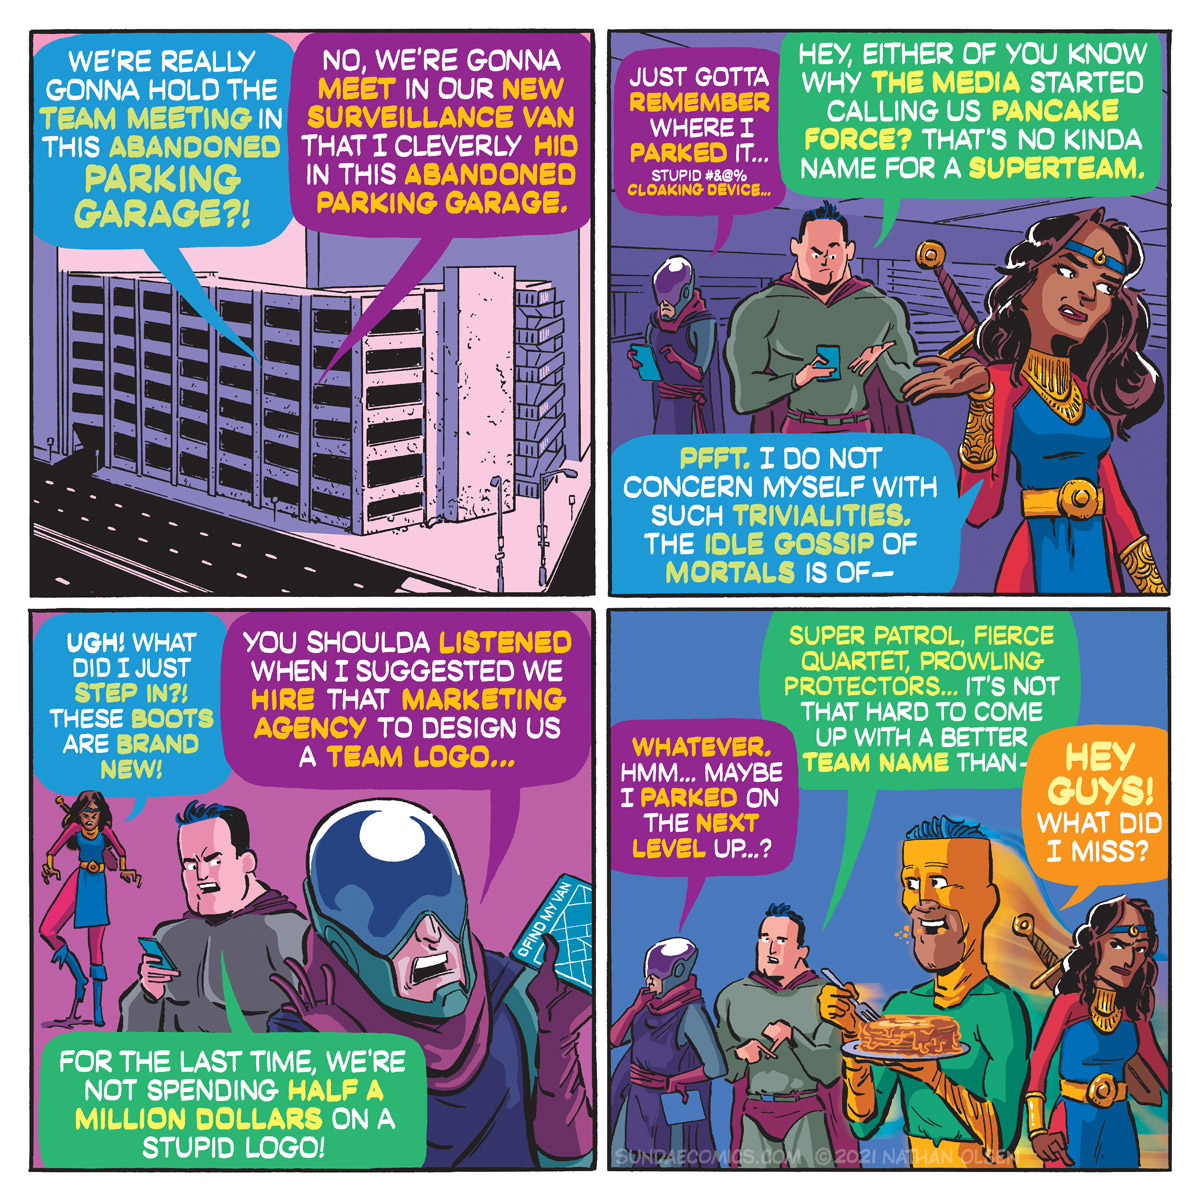 A funny webcomic about everyone's favorite super team getting lost in an abandoned parking structure!